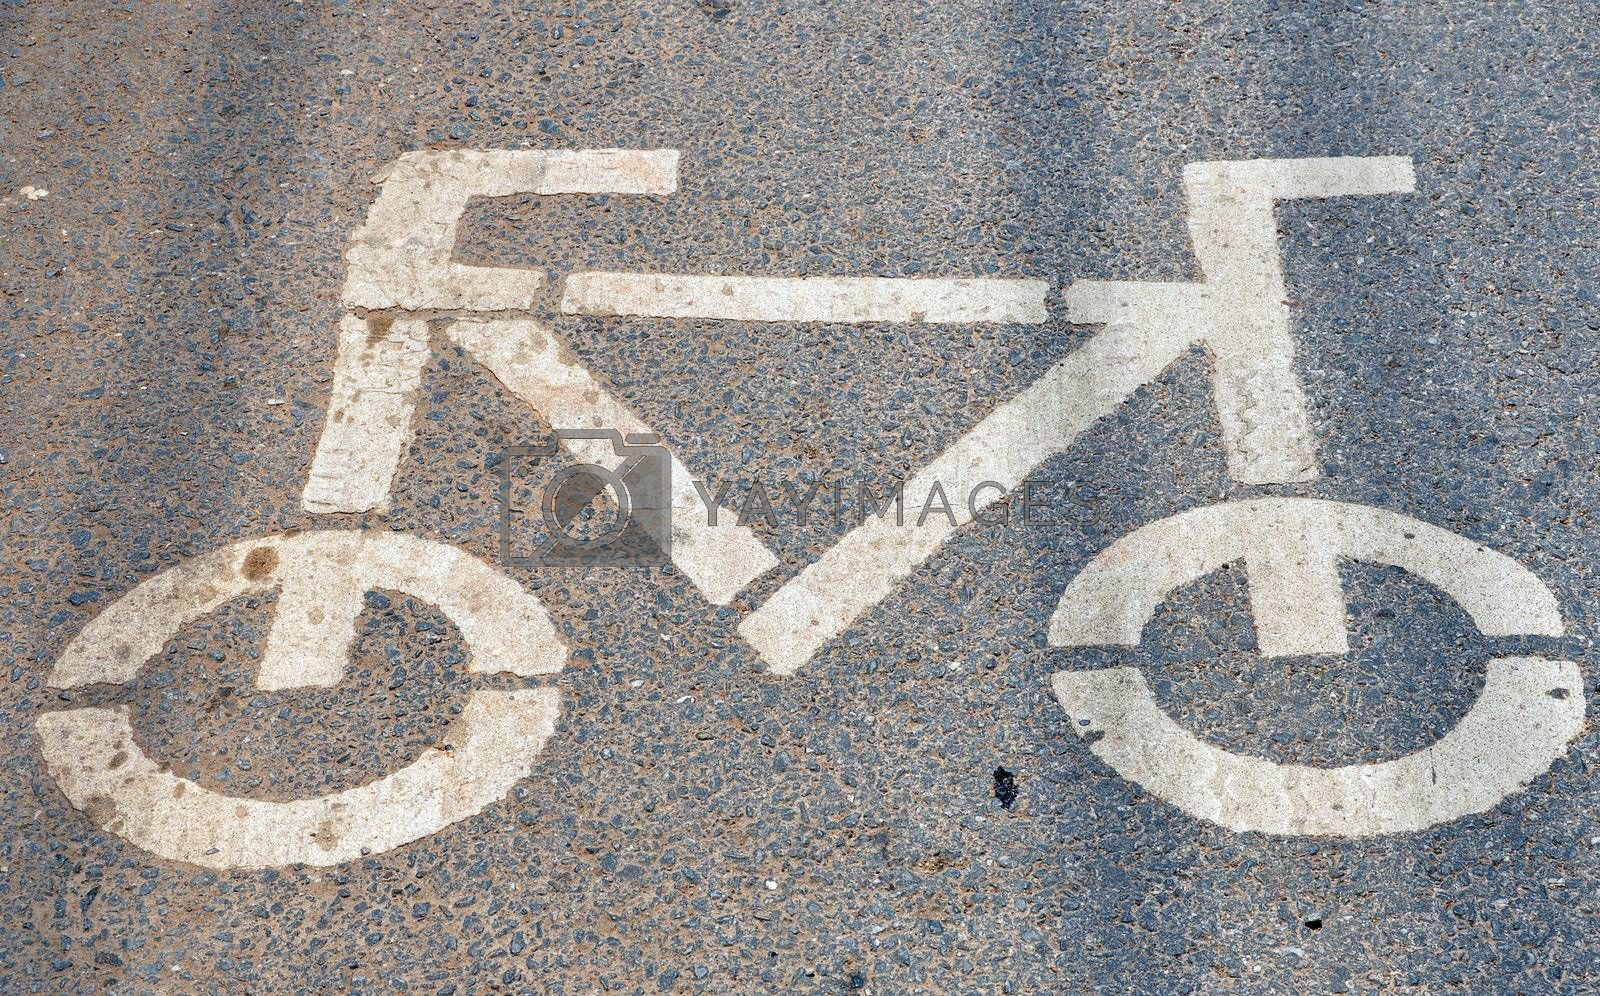 Bike lanes and road shoulders demarcated by a painted marking are quite common both in many European and American cities.